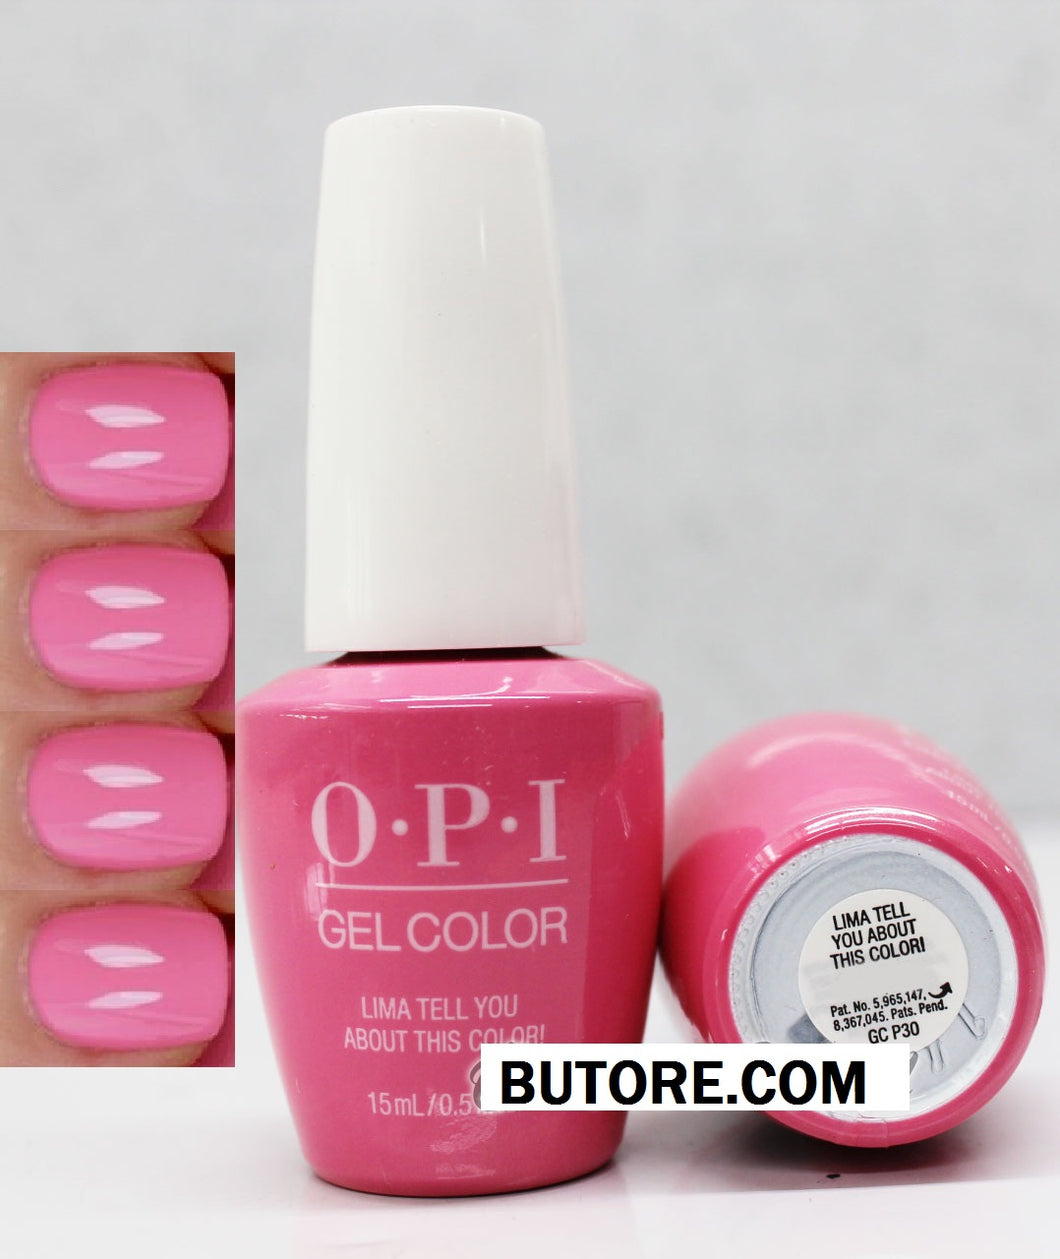 OPI Lima Tell You About This Color! Gel